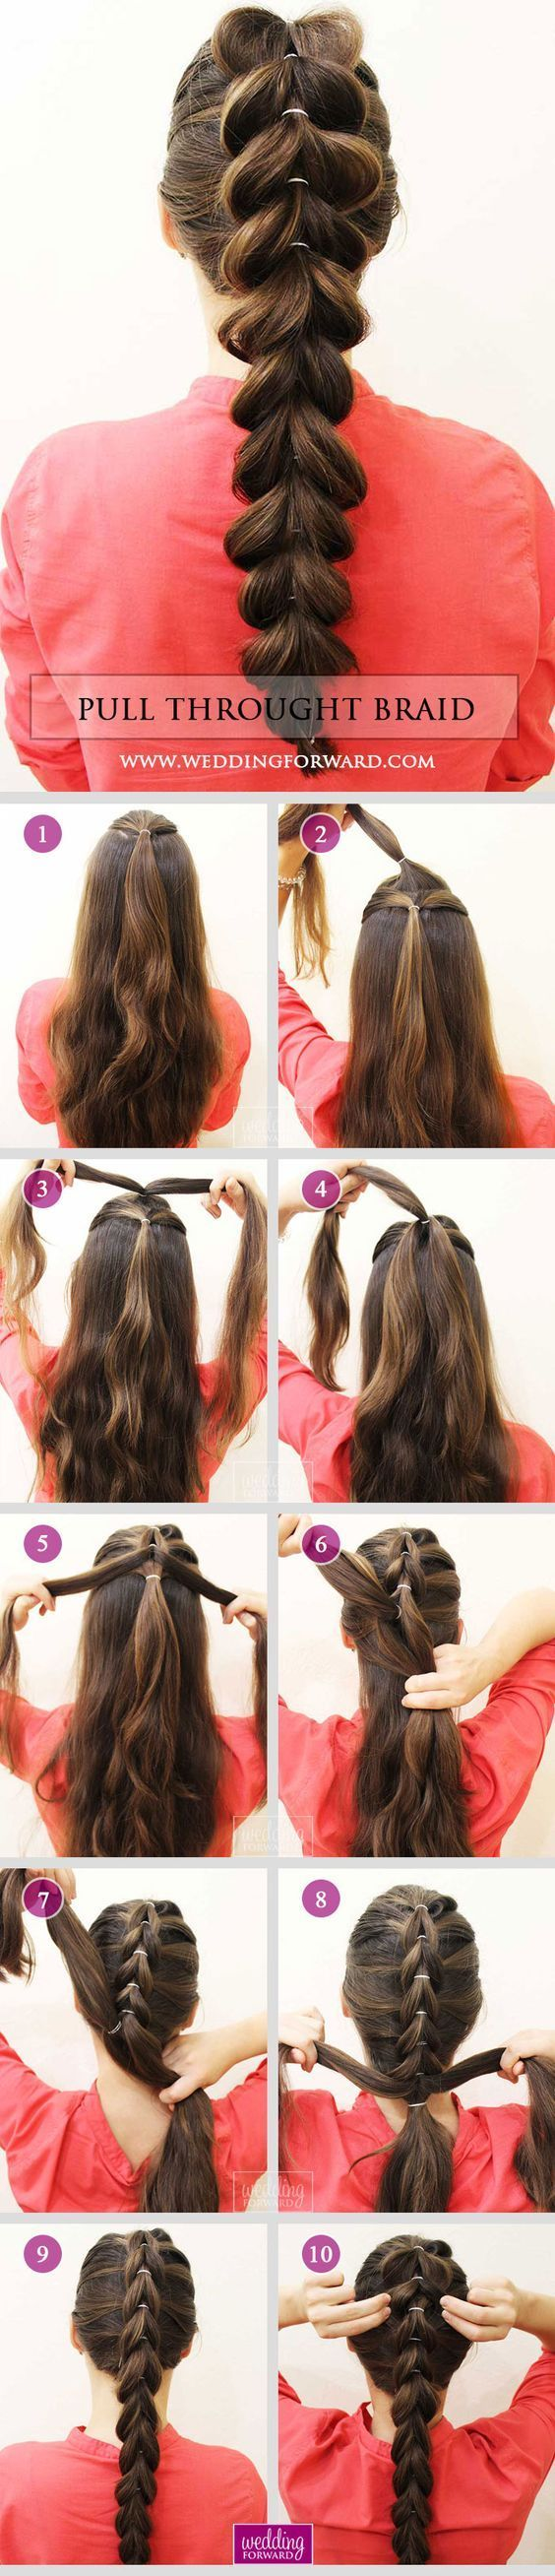 EASY 5 MINUTES CLEAN HAIR STYLE IDEAS FOR OCCUPIED WOMEN